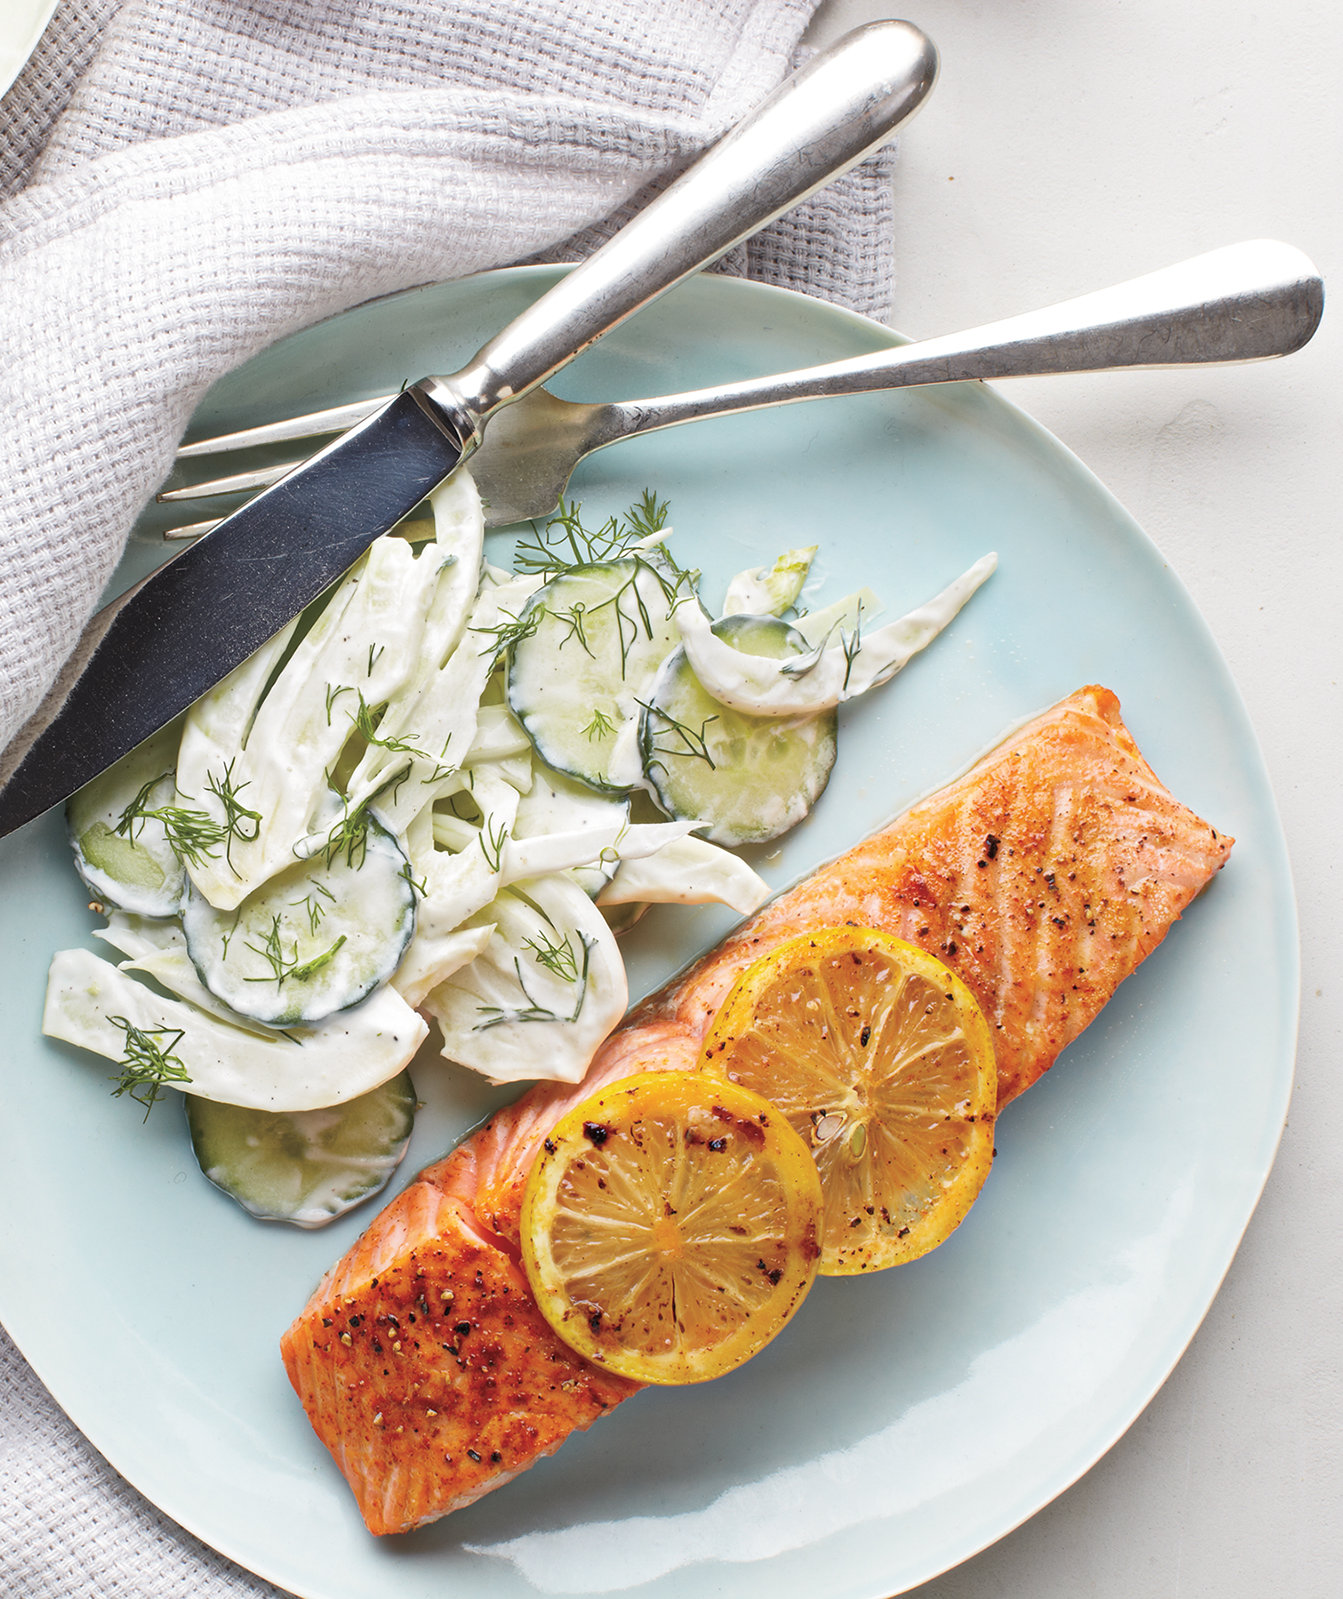 Easy And Fast Dinner Ideas: Salmon With Creamy Cucumber-Fennel Salad